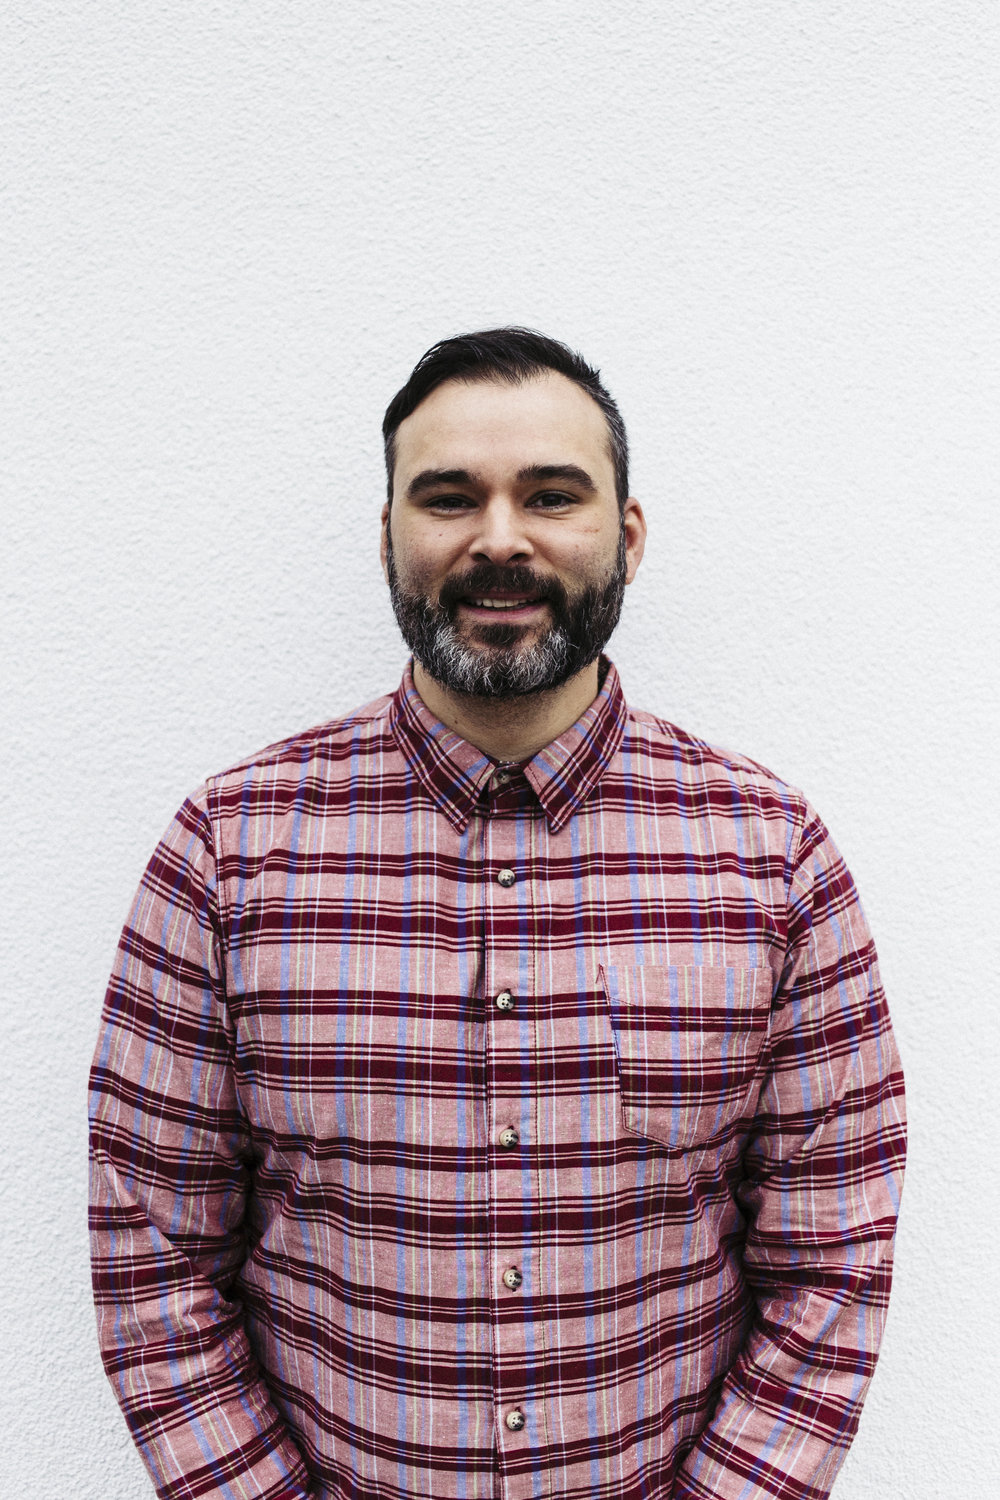 JESSE   Jesse Crock (MA) is one of our Regional Trainers and is based in Seattle. He is the US Operations Director for World Outreach Ministry Foundation that operates in 8 African countries. He holds an MA in International Community Development and is also an adjunct professor at Northwest University.  Jesse's expertise is in holistic transformational development with a focus on community participation.